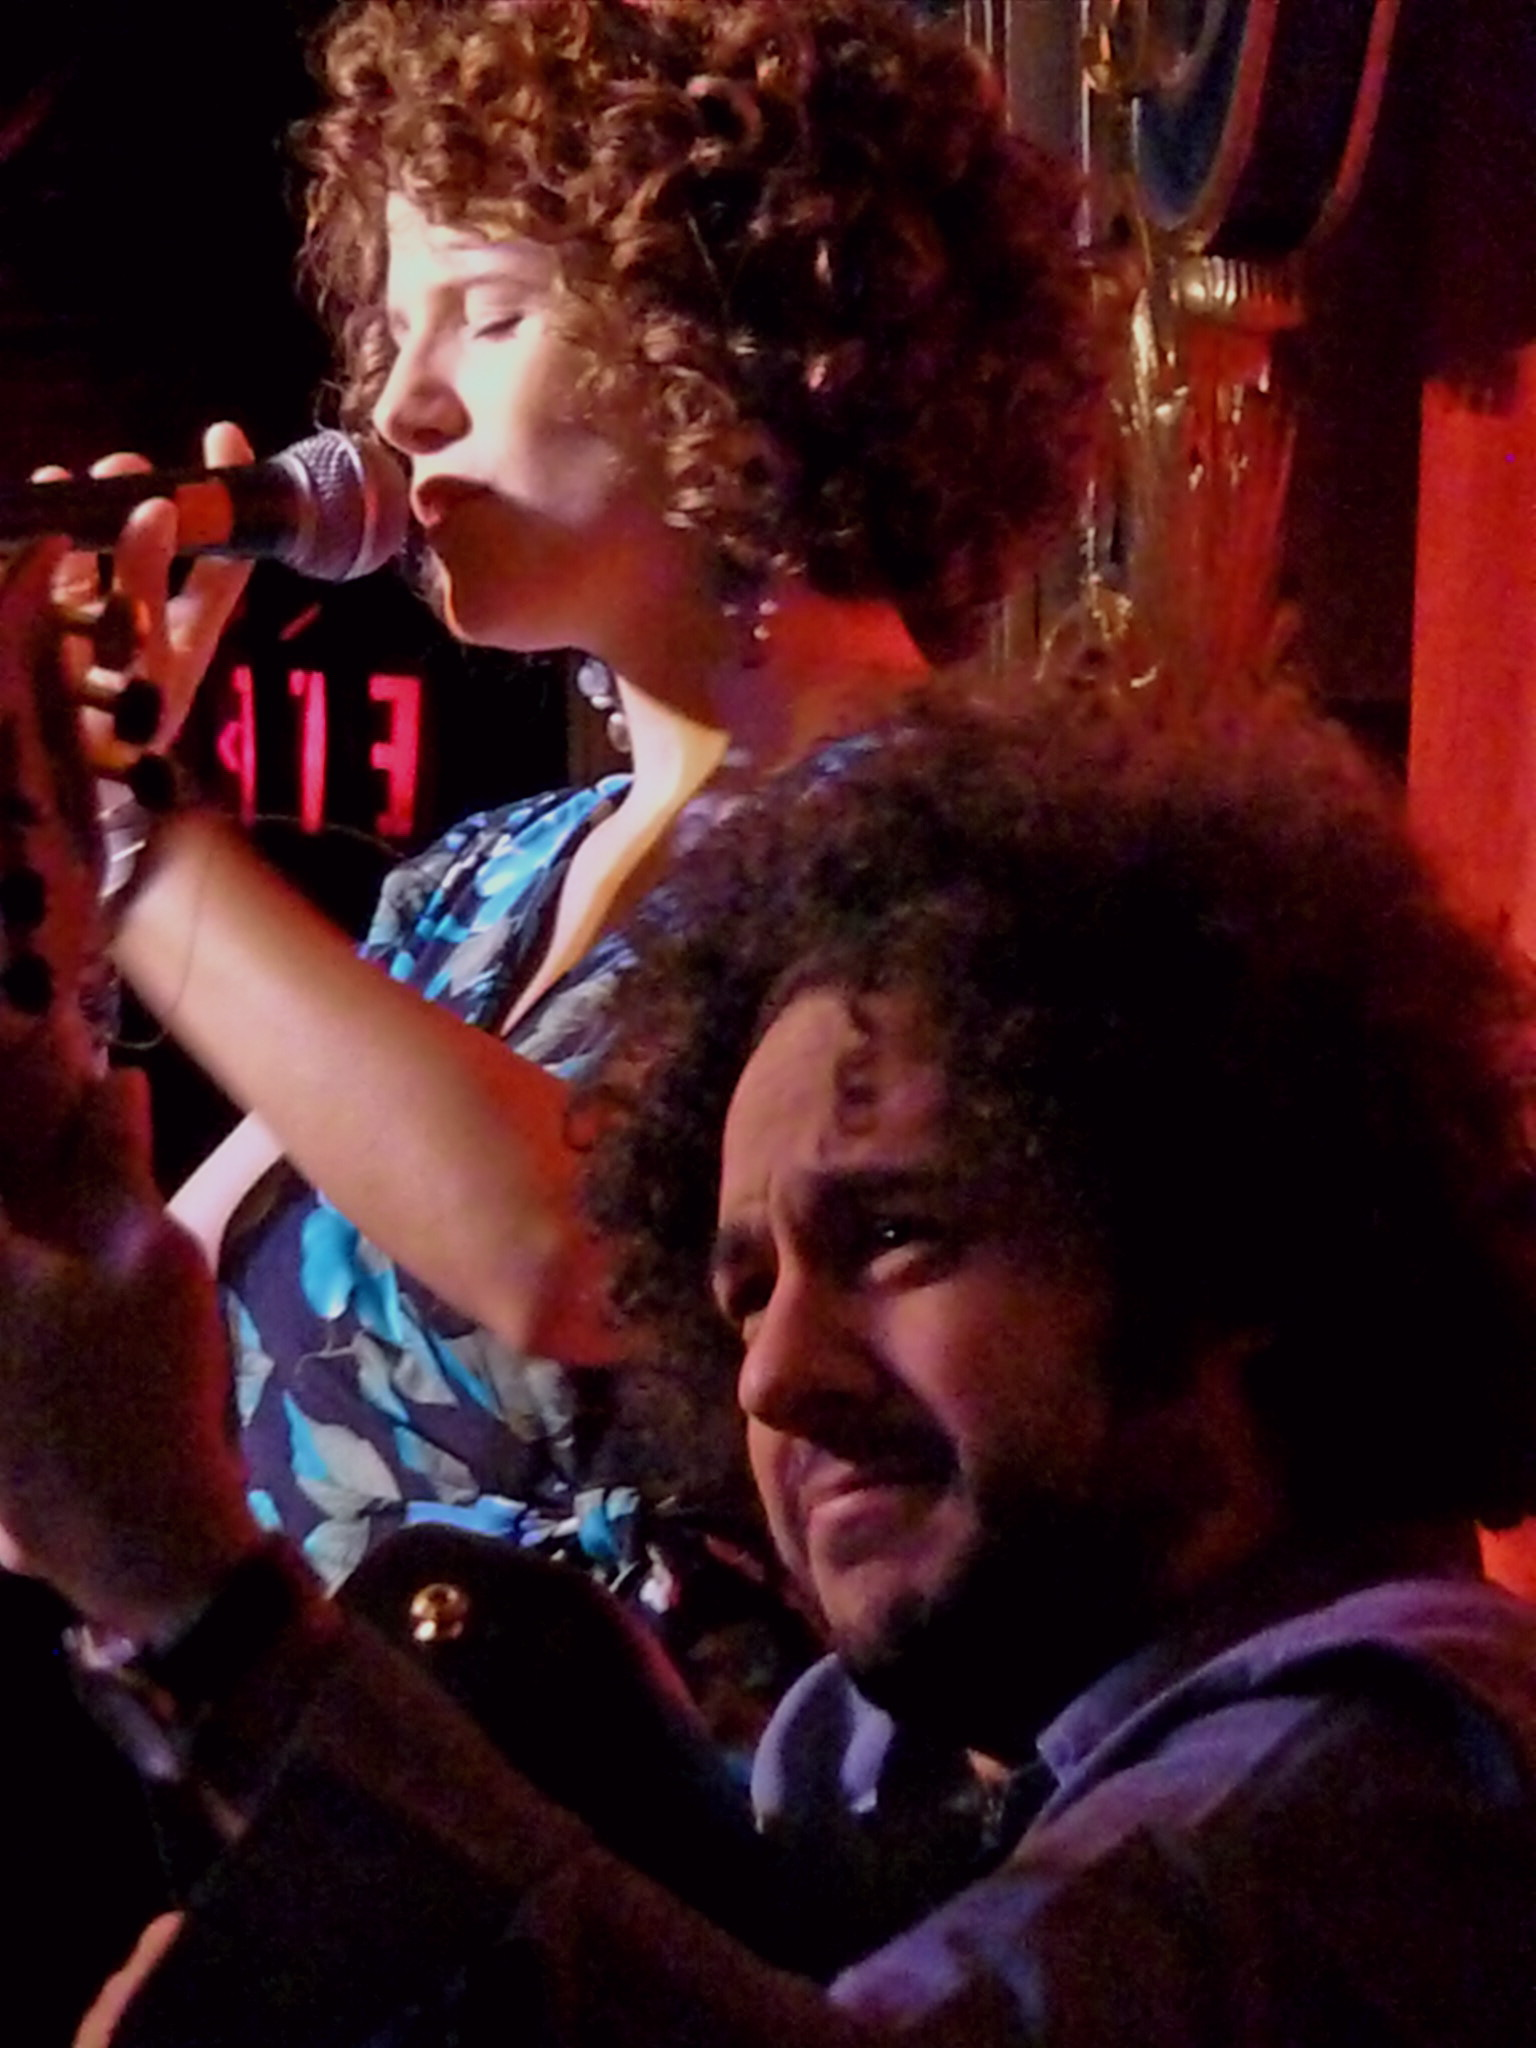 Cyrille Aimee & Diego Figueiredo at Nighttown, Sept. 27, 2011